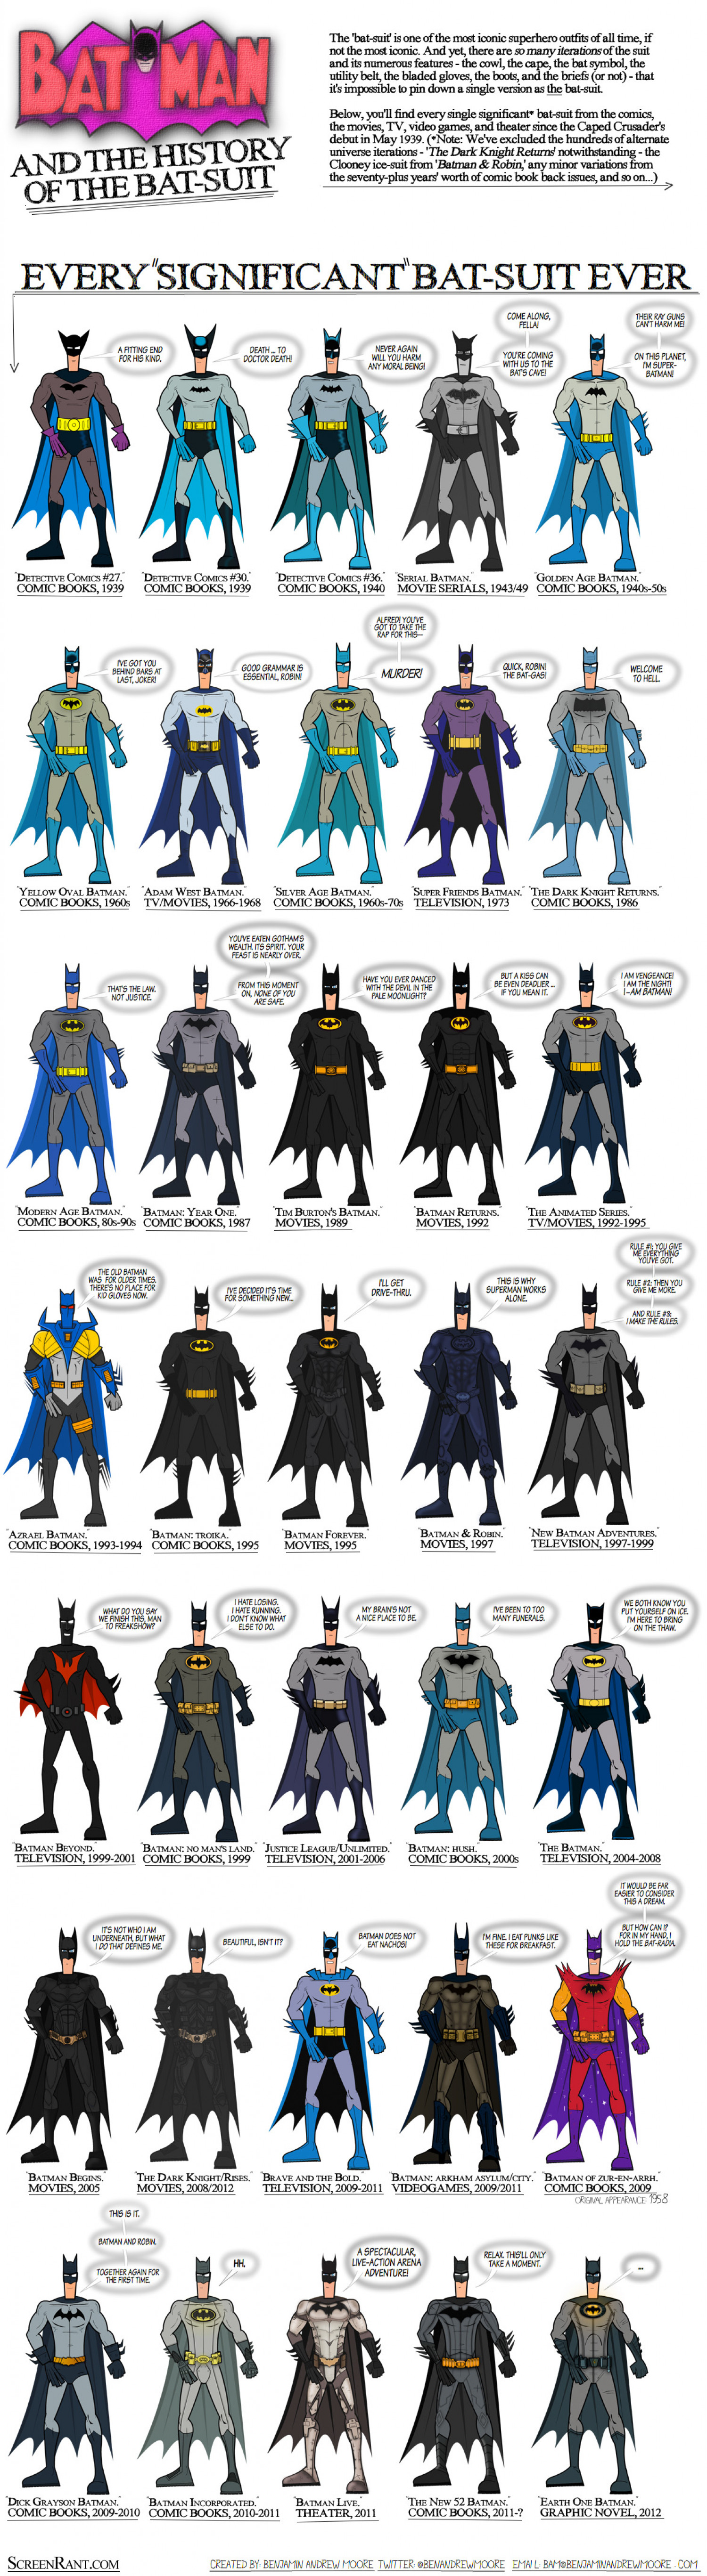 The History of the Bat Suit Infographic